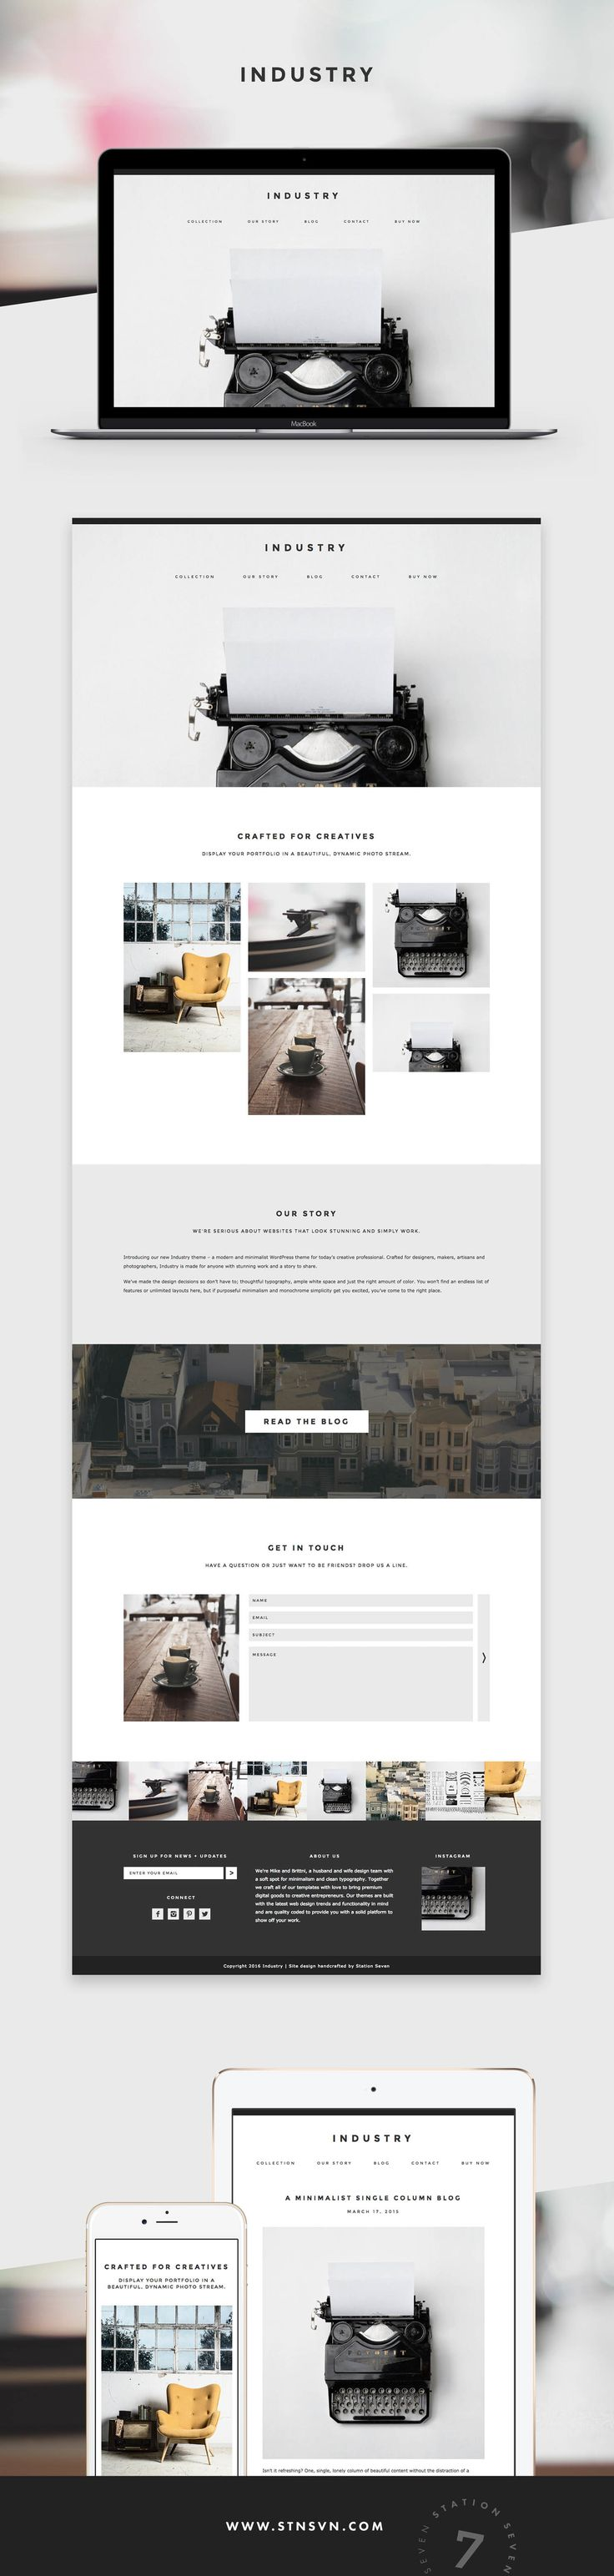 Industry is a modern and minimalist WordPress theme for today's creative professional crafted by Station Seven.